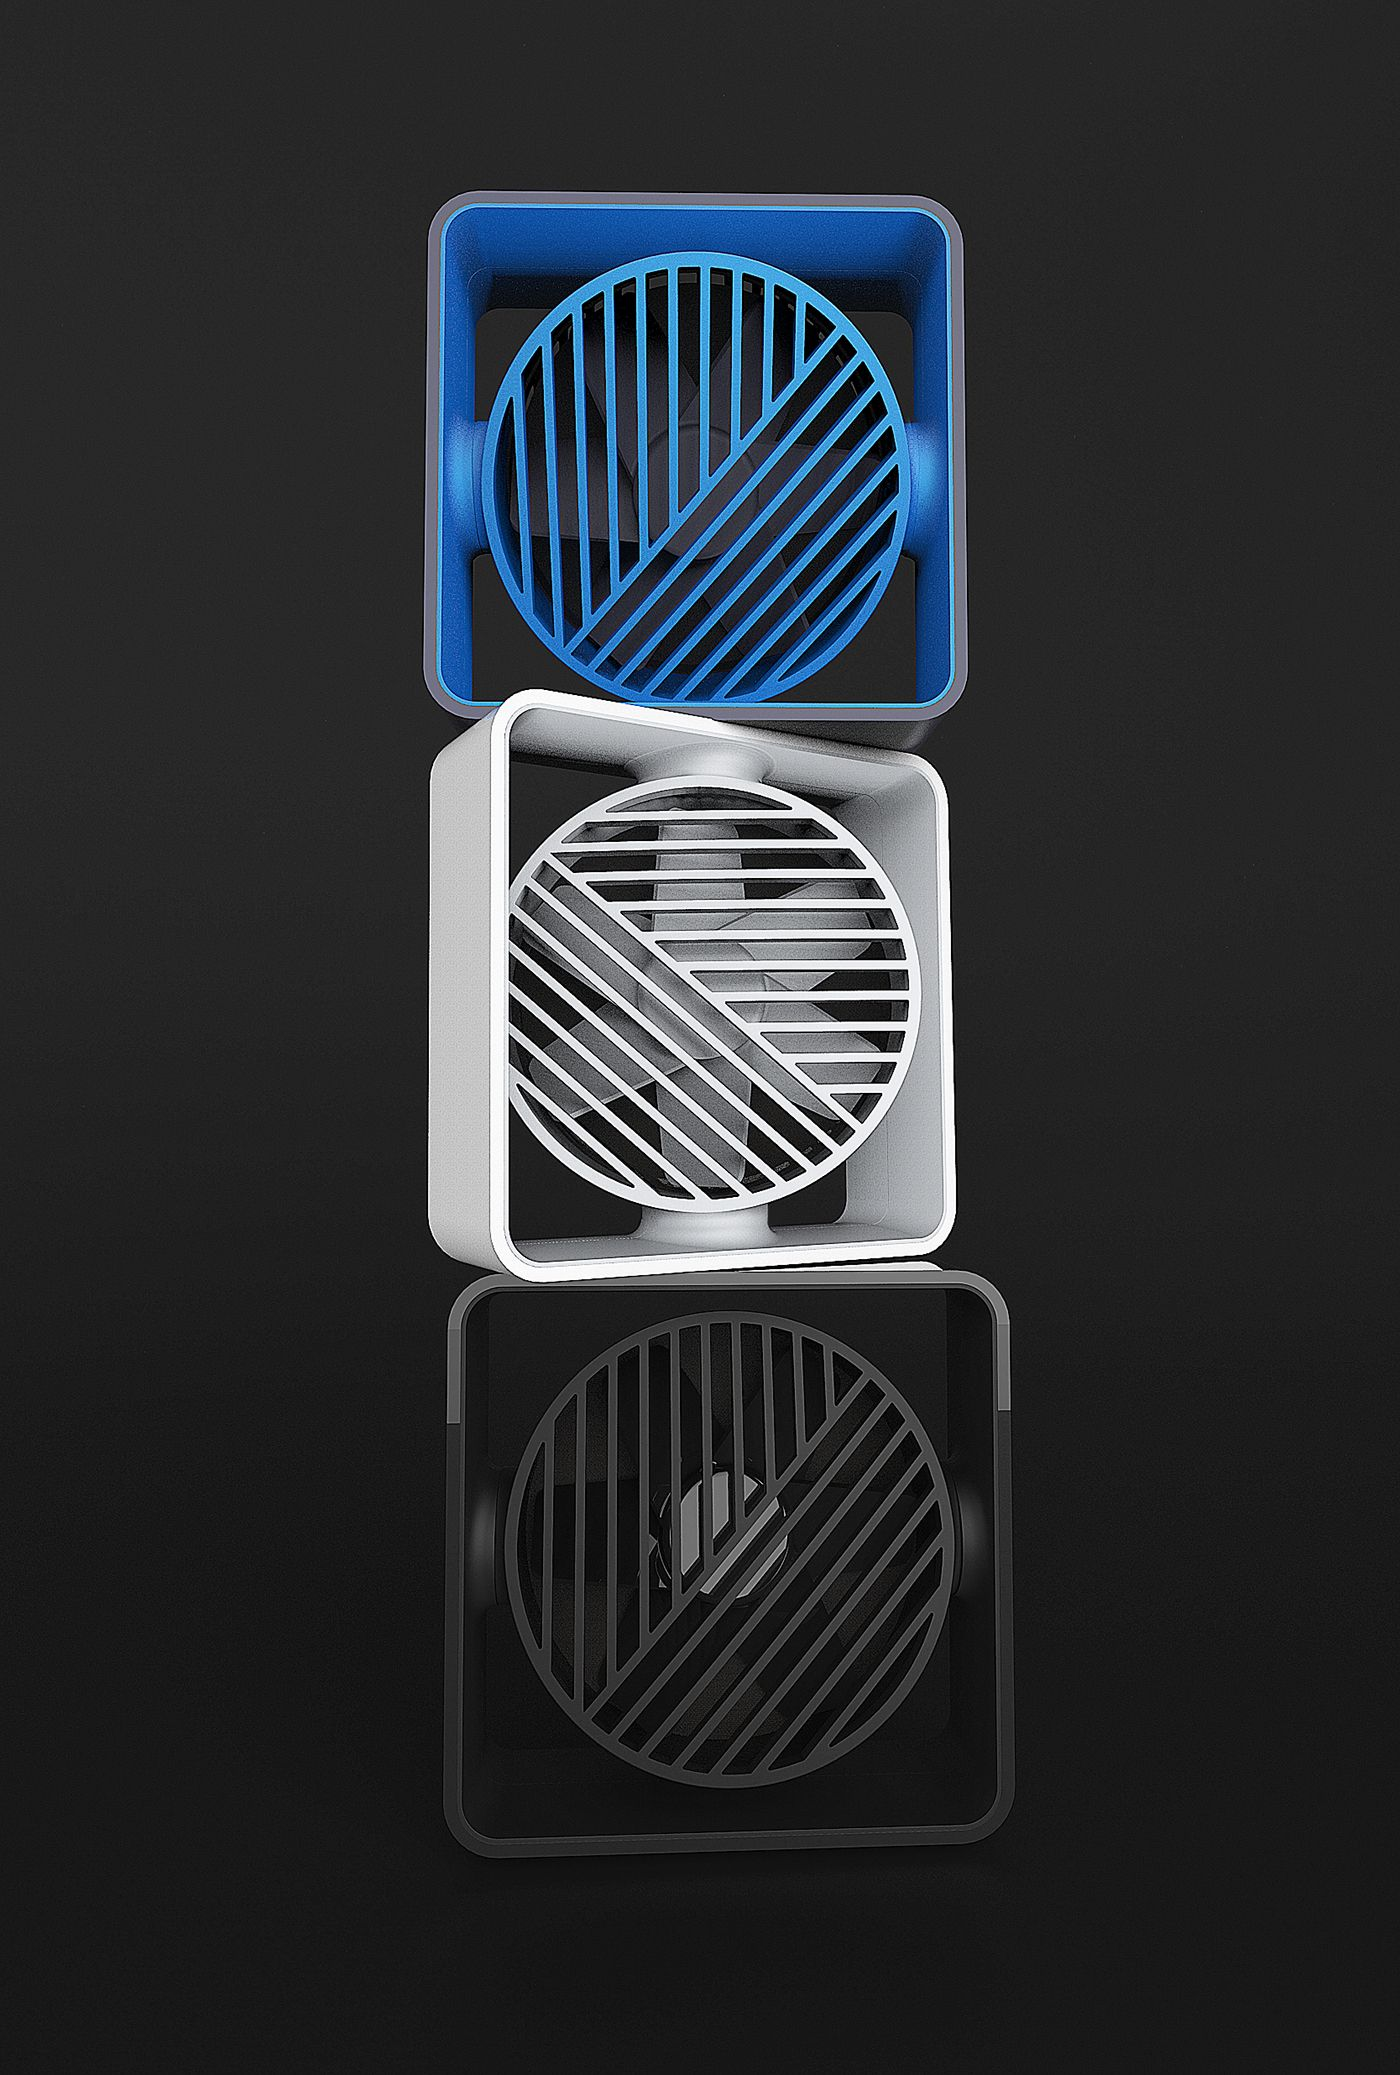 Articulating USB powered desk fan.